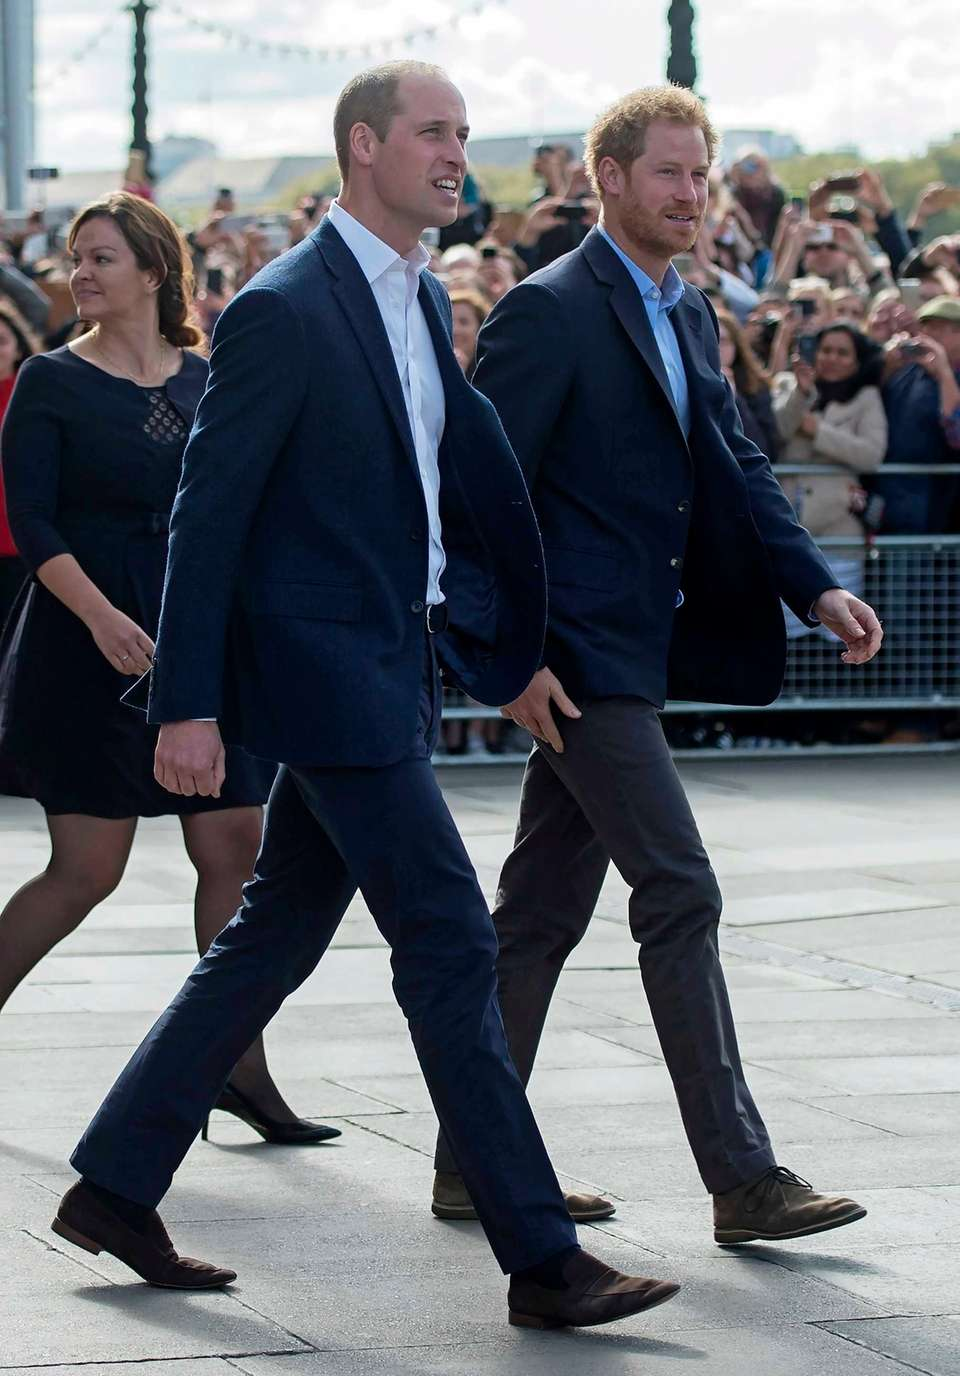 Prince William, Duke of Cambridge, left, and Prince